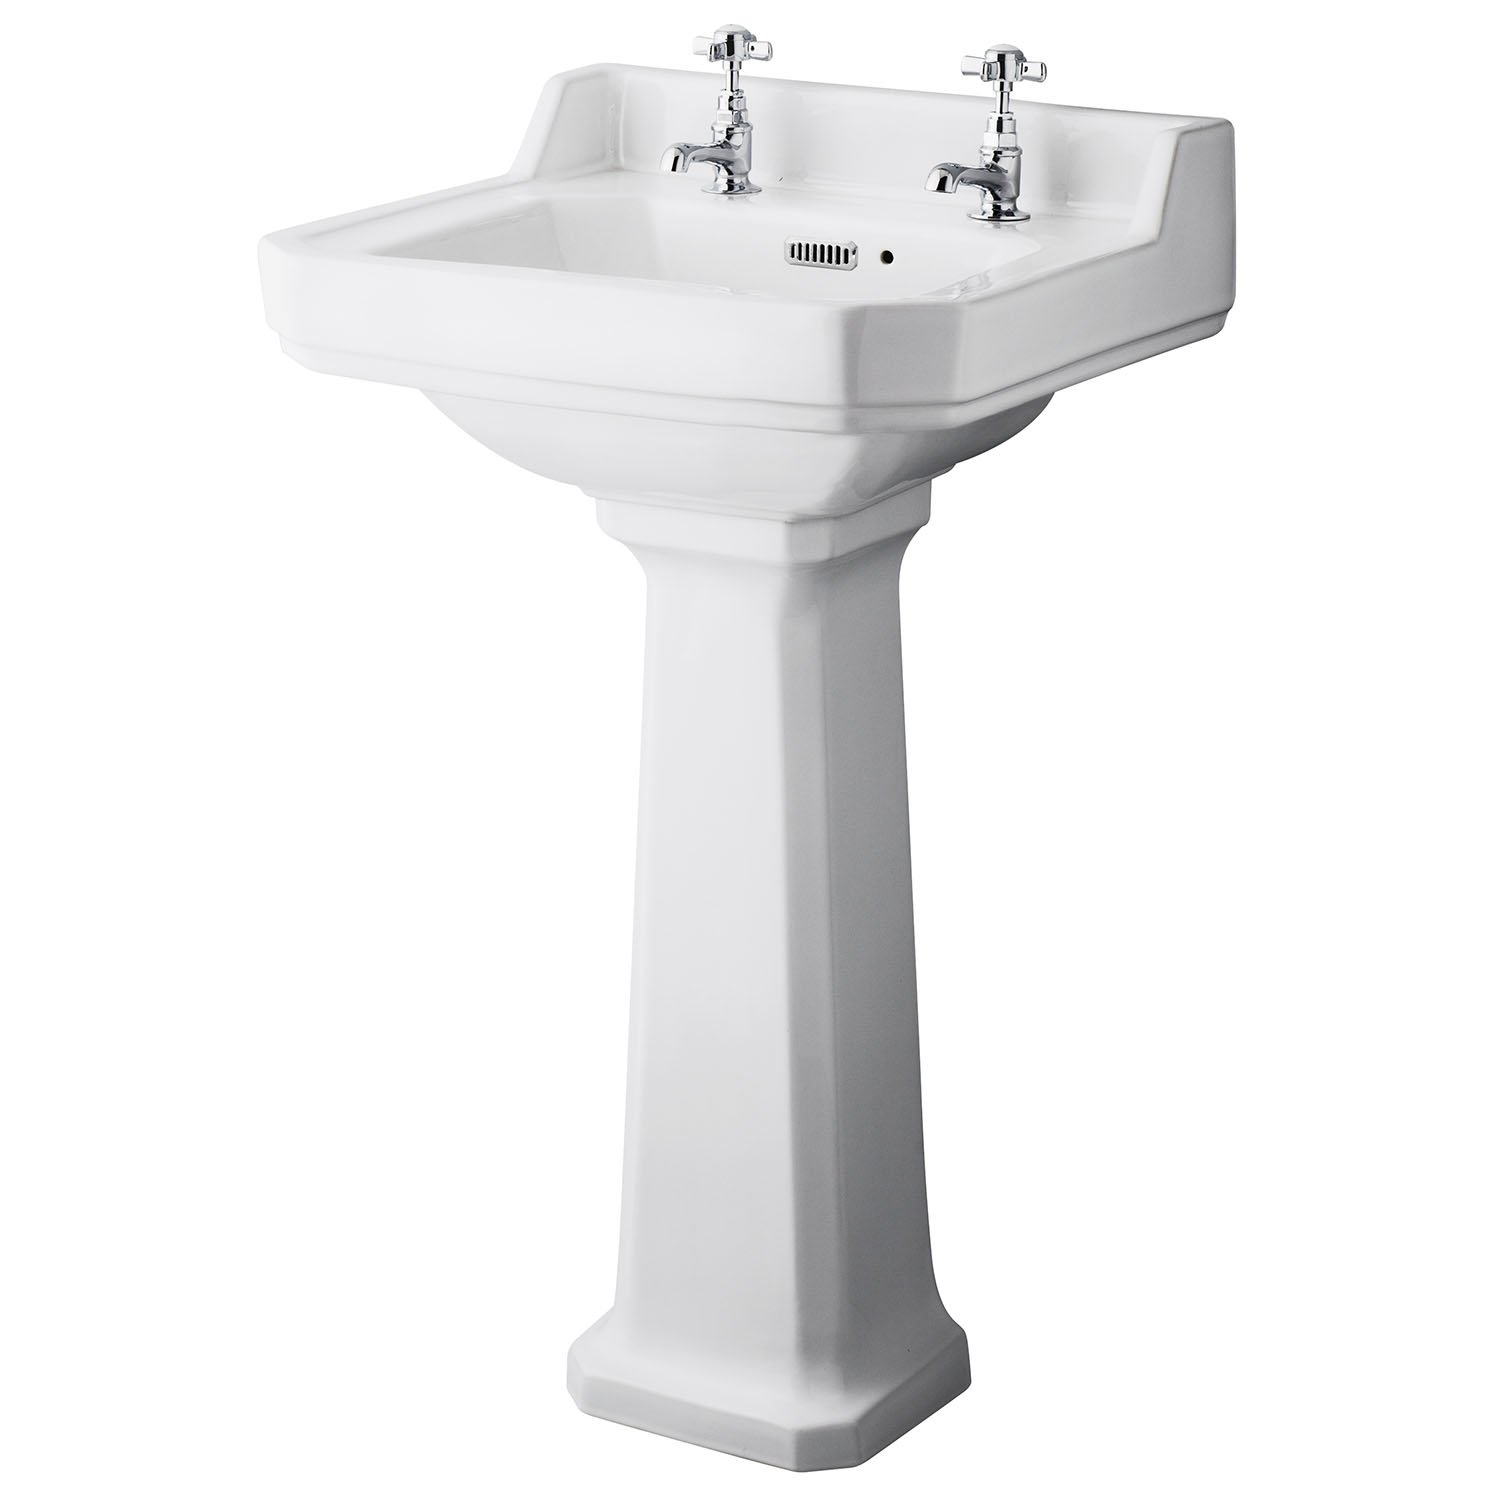 Old London CCR019 Richmond 500mm Basin & Pedestal (2 Tap Hole), White, 560mm